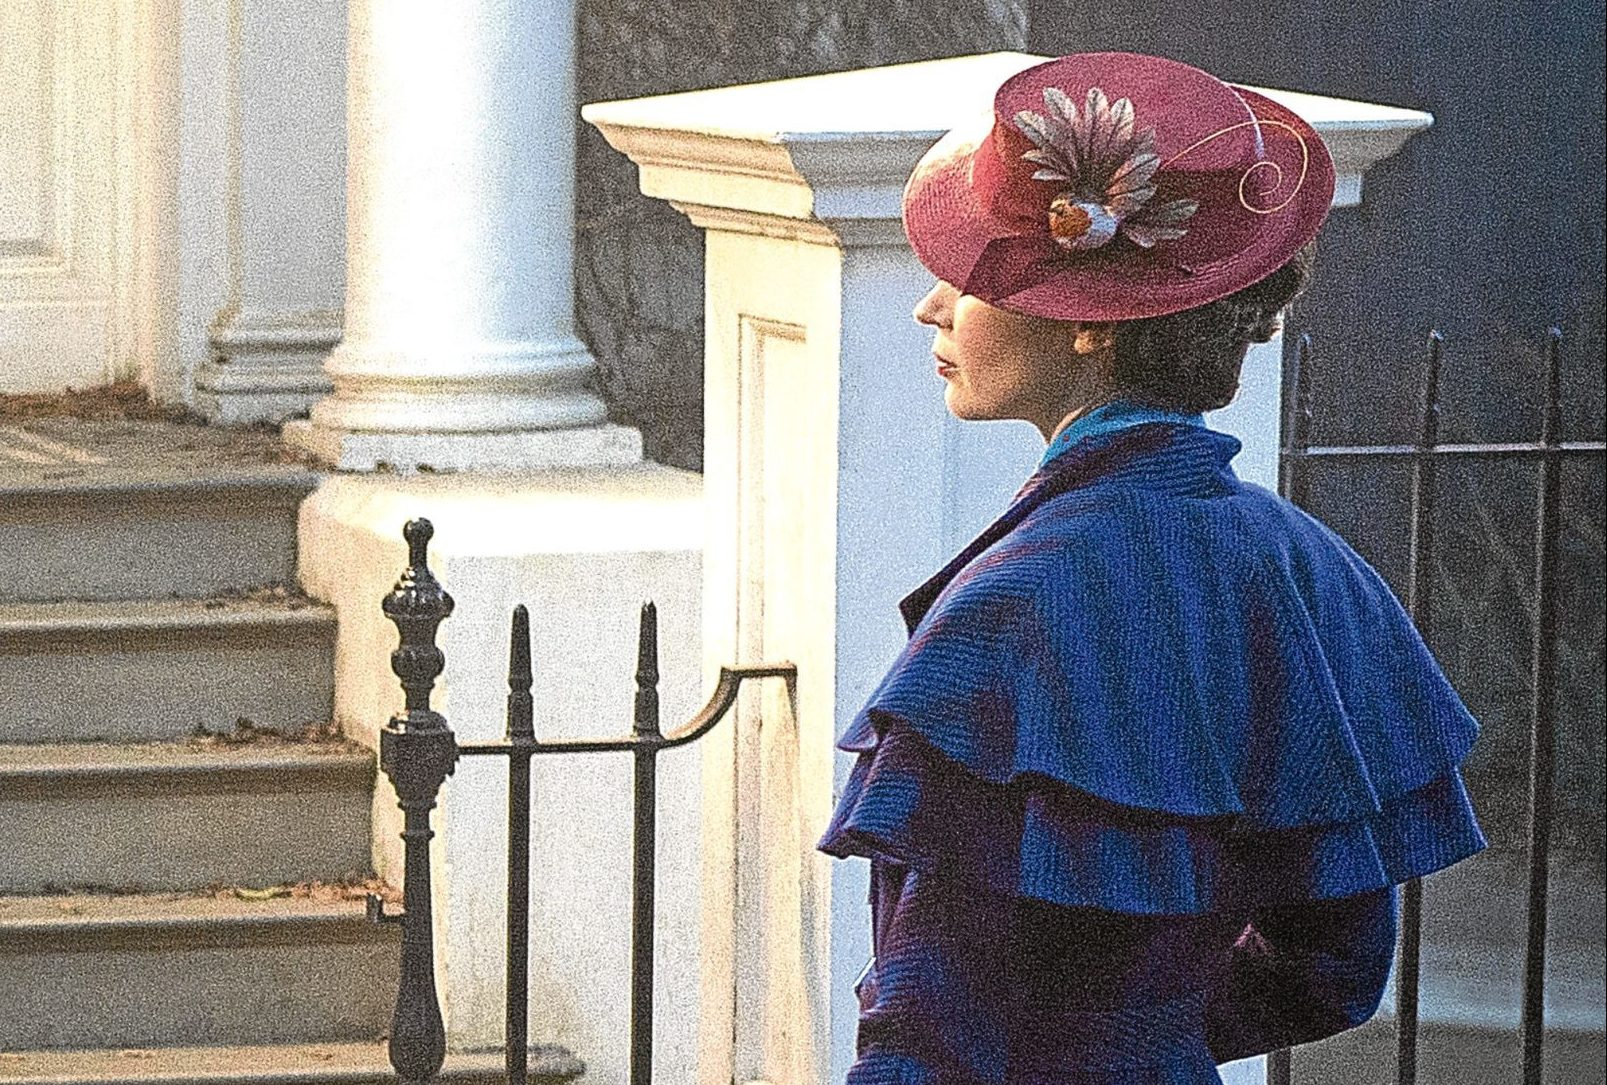 Mary Poppins Film 'MARY POPPINS RETURNS' (2018) (Allstar/WALT DISNEY PICTURES)